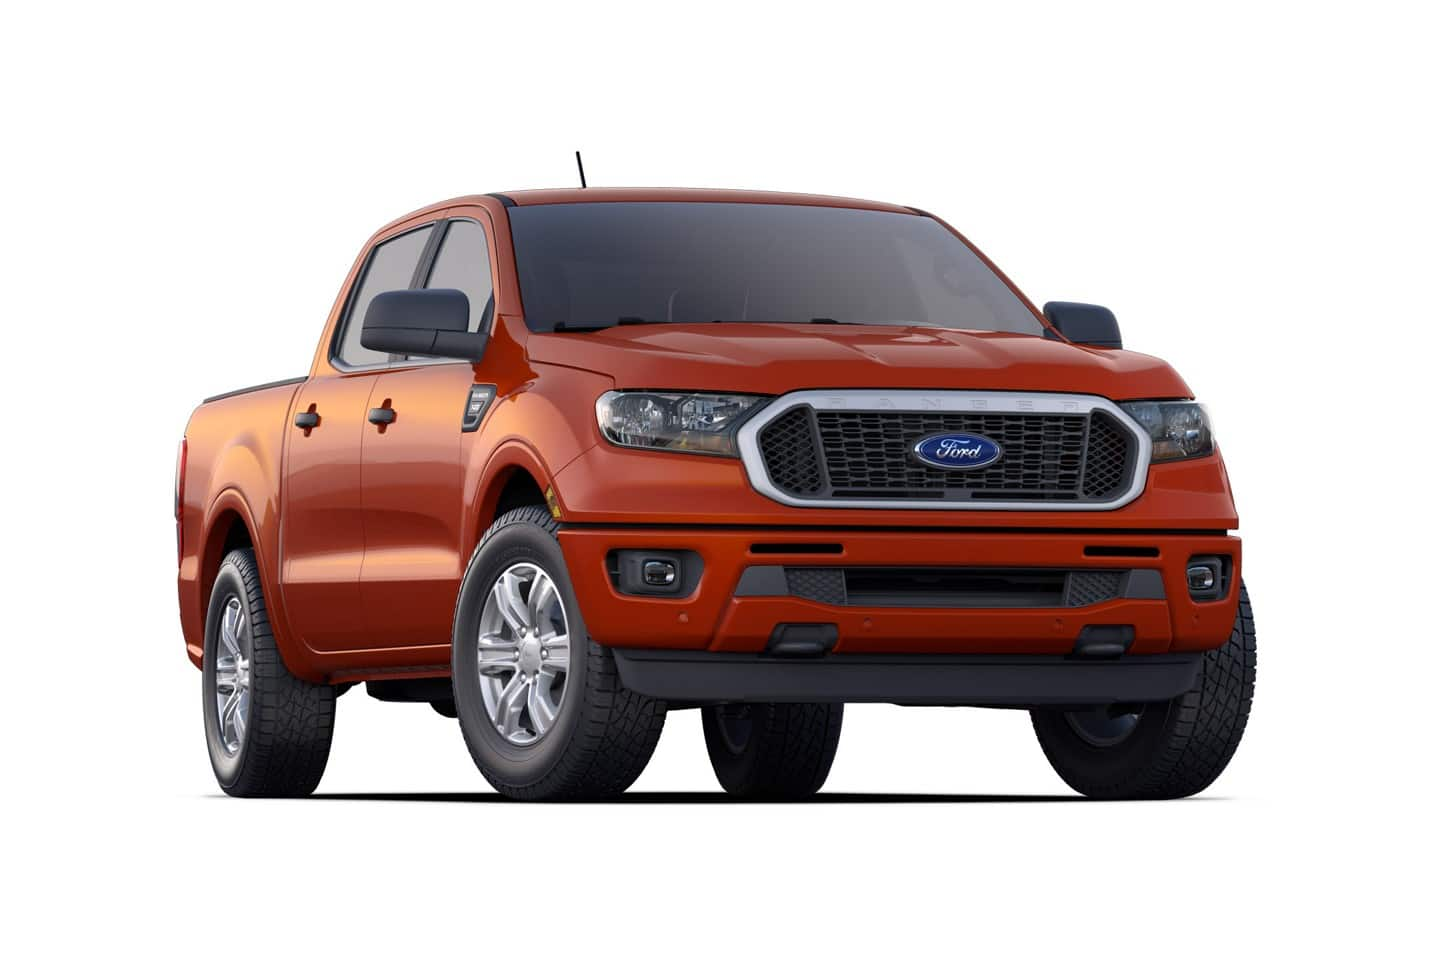 98 The Best 2019 Ford Ranger Review And Release Date